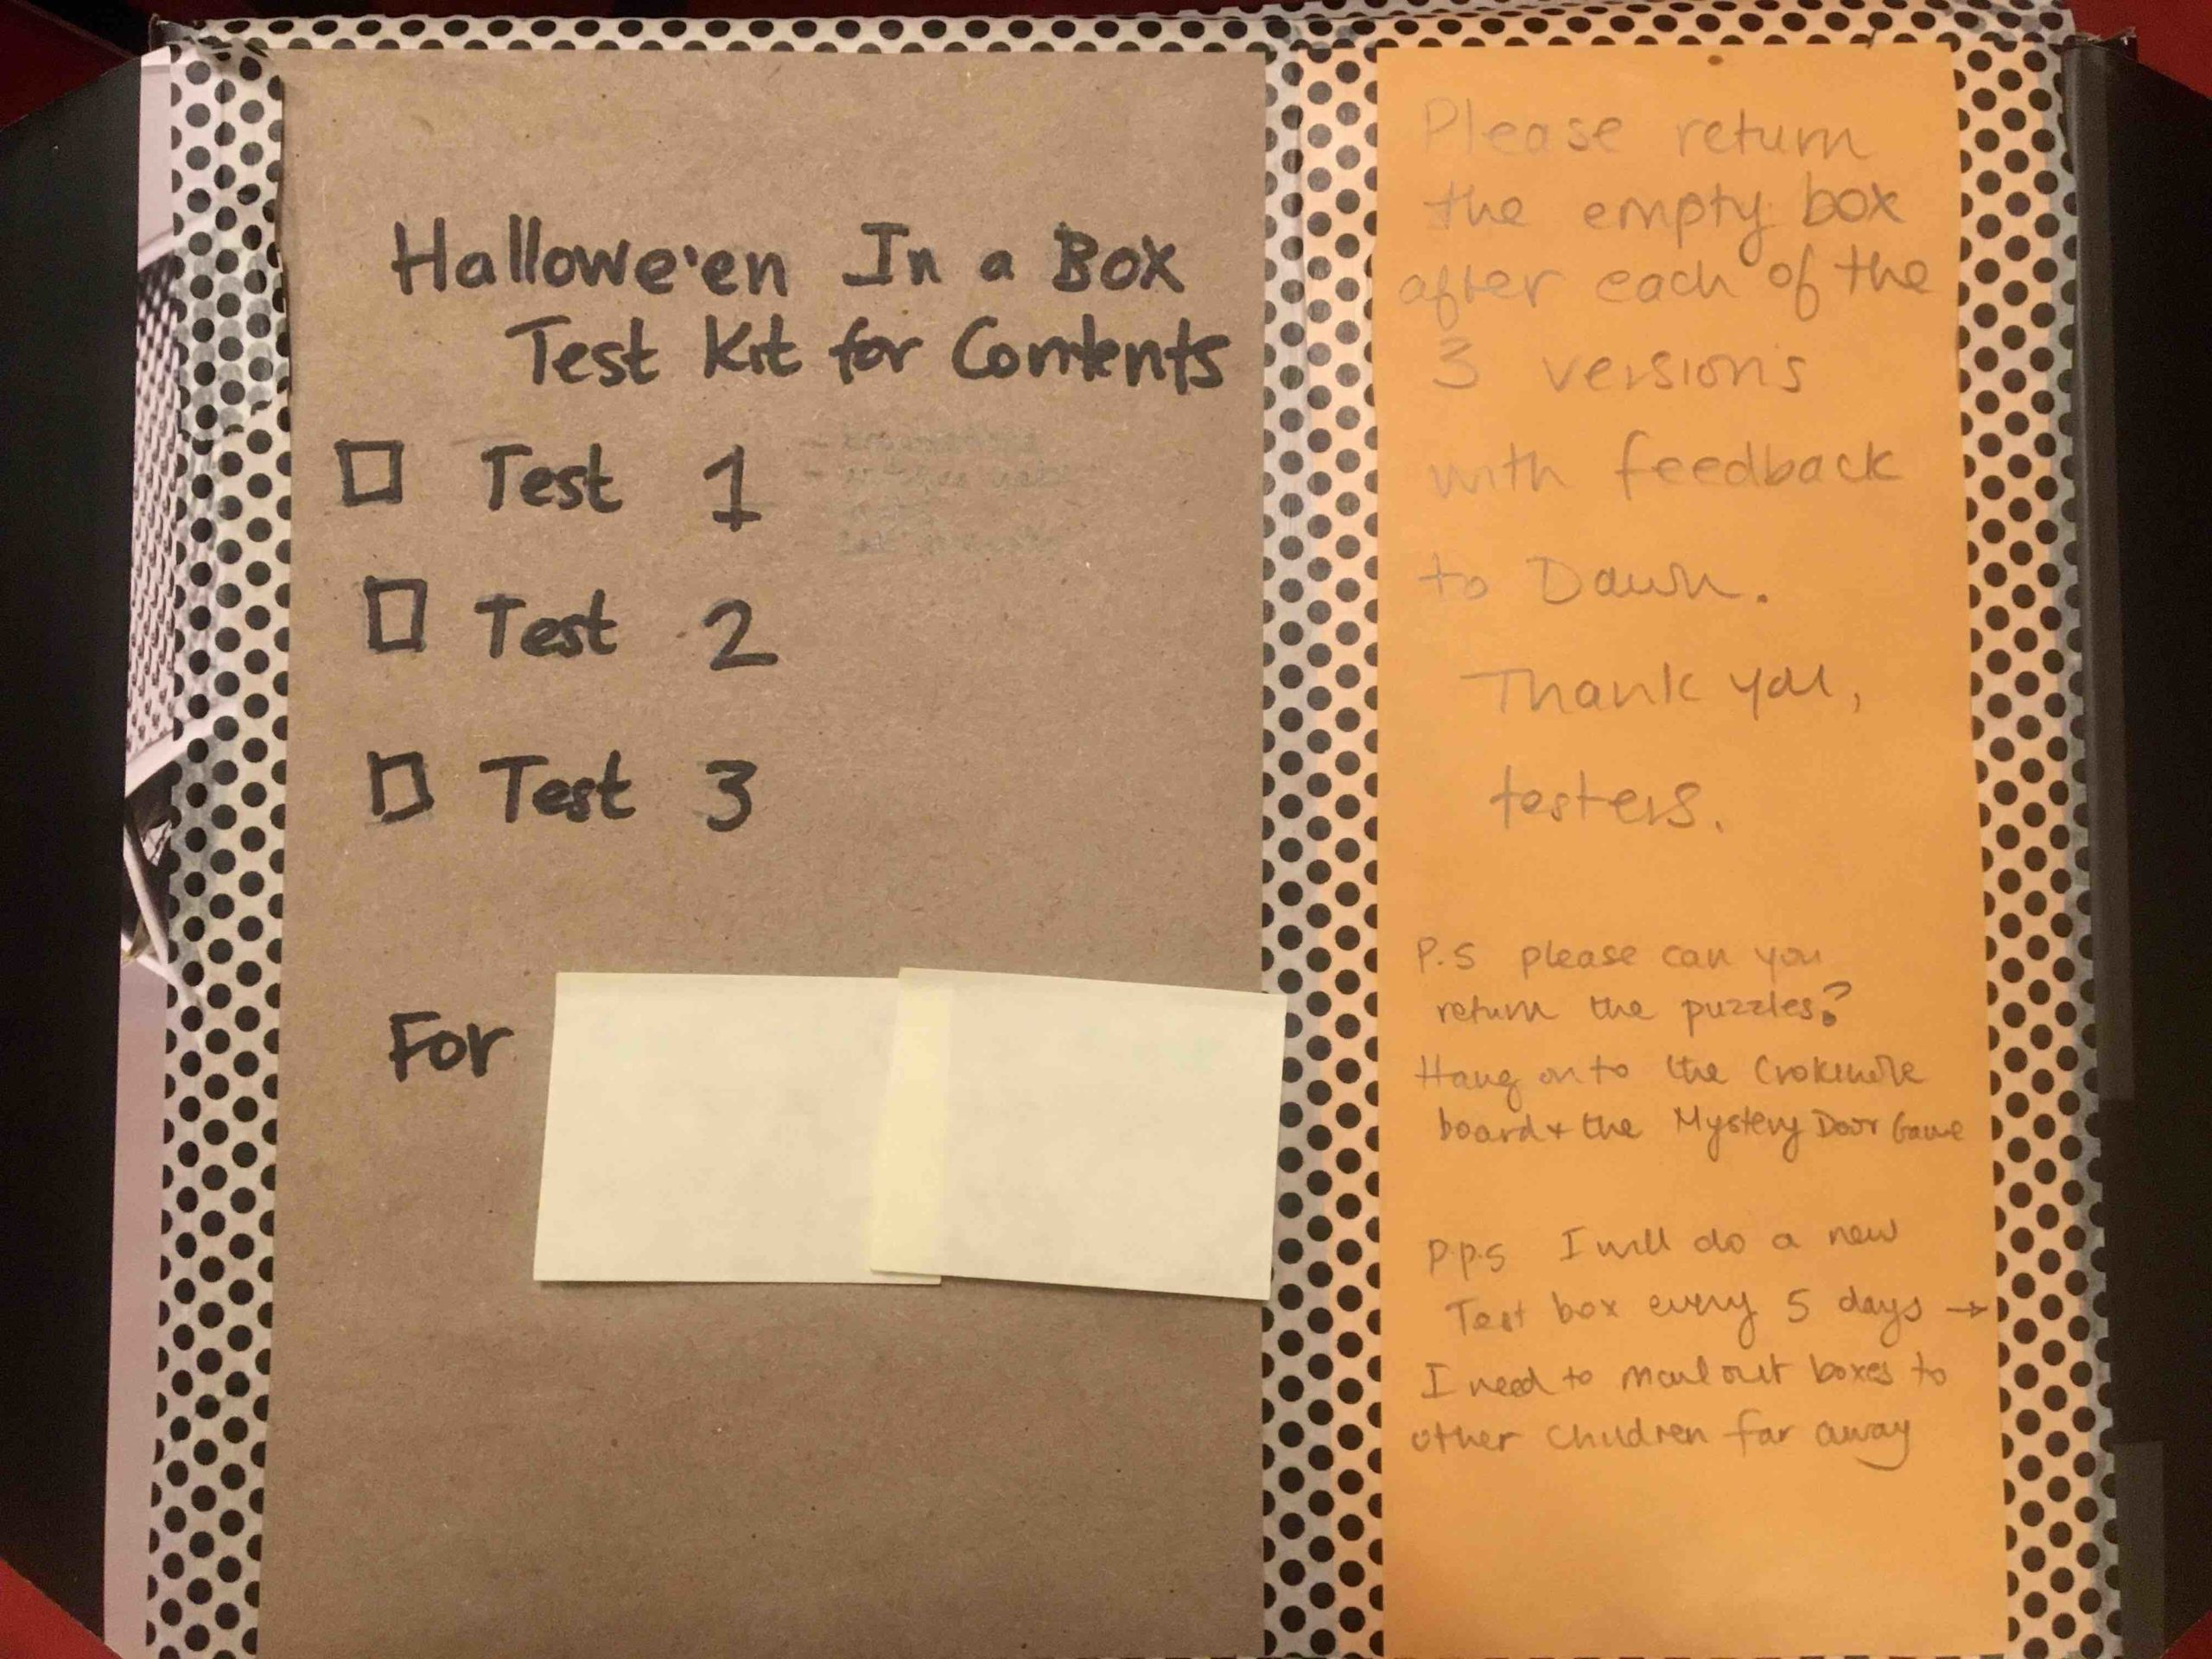 trick or treat kit for testing